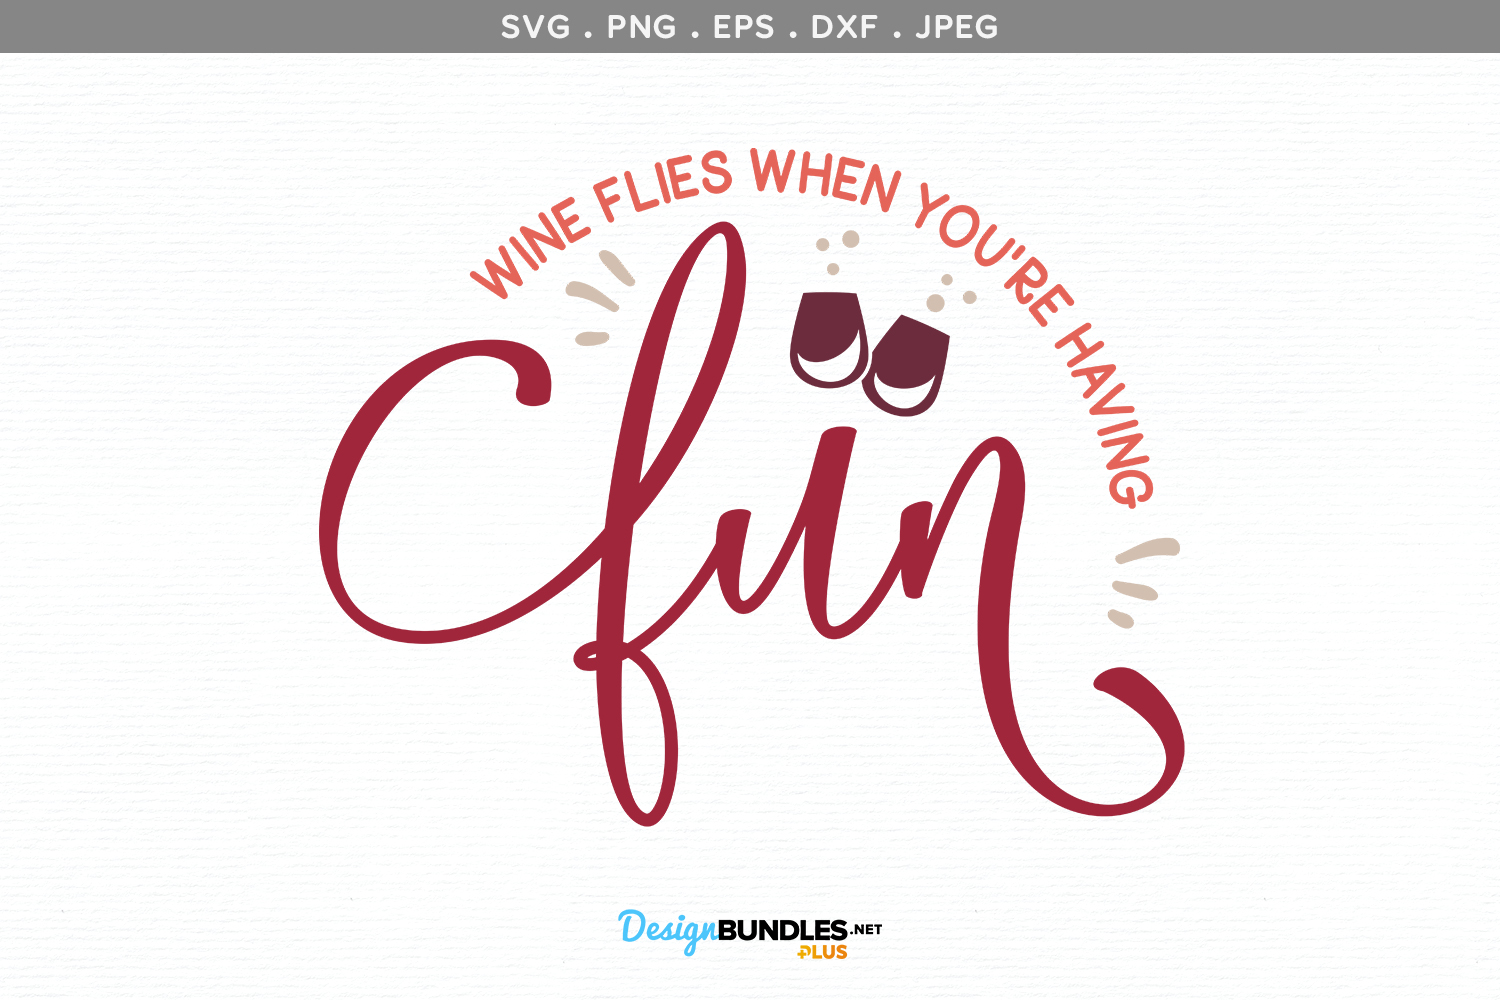 Wine flies when you're having fun SVG example image 2